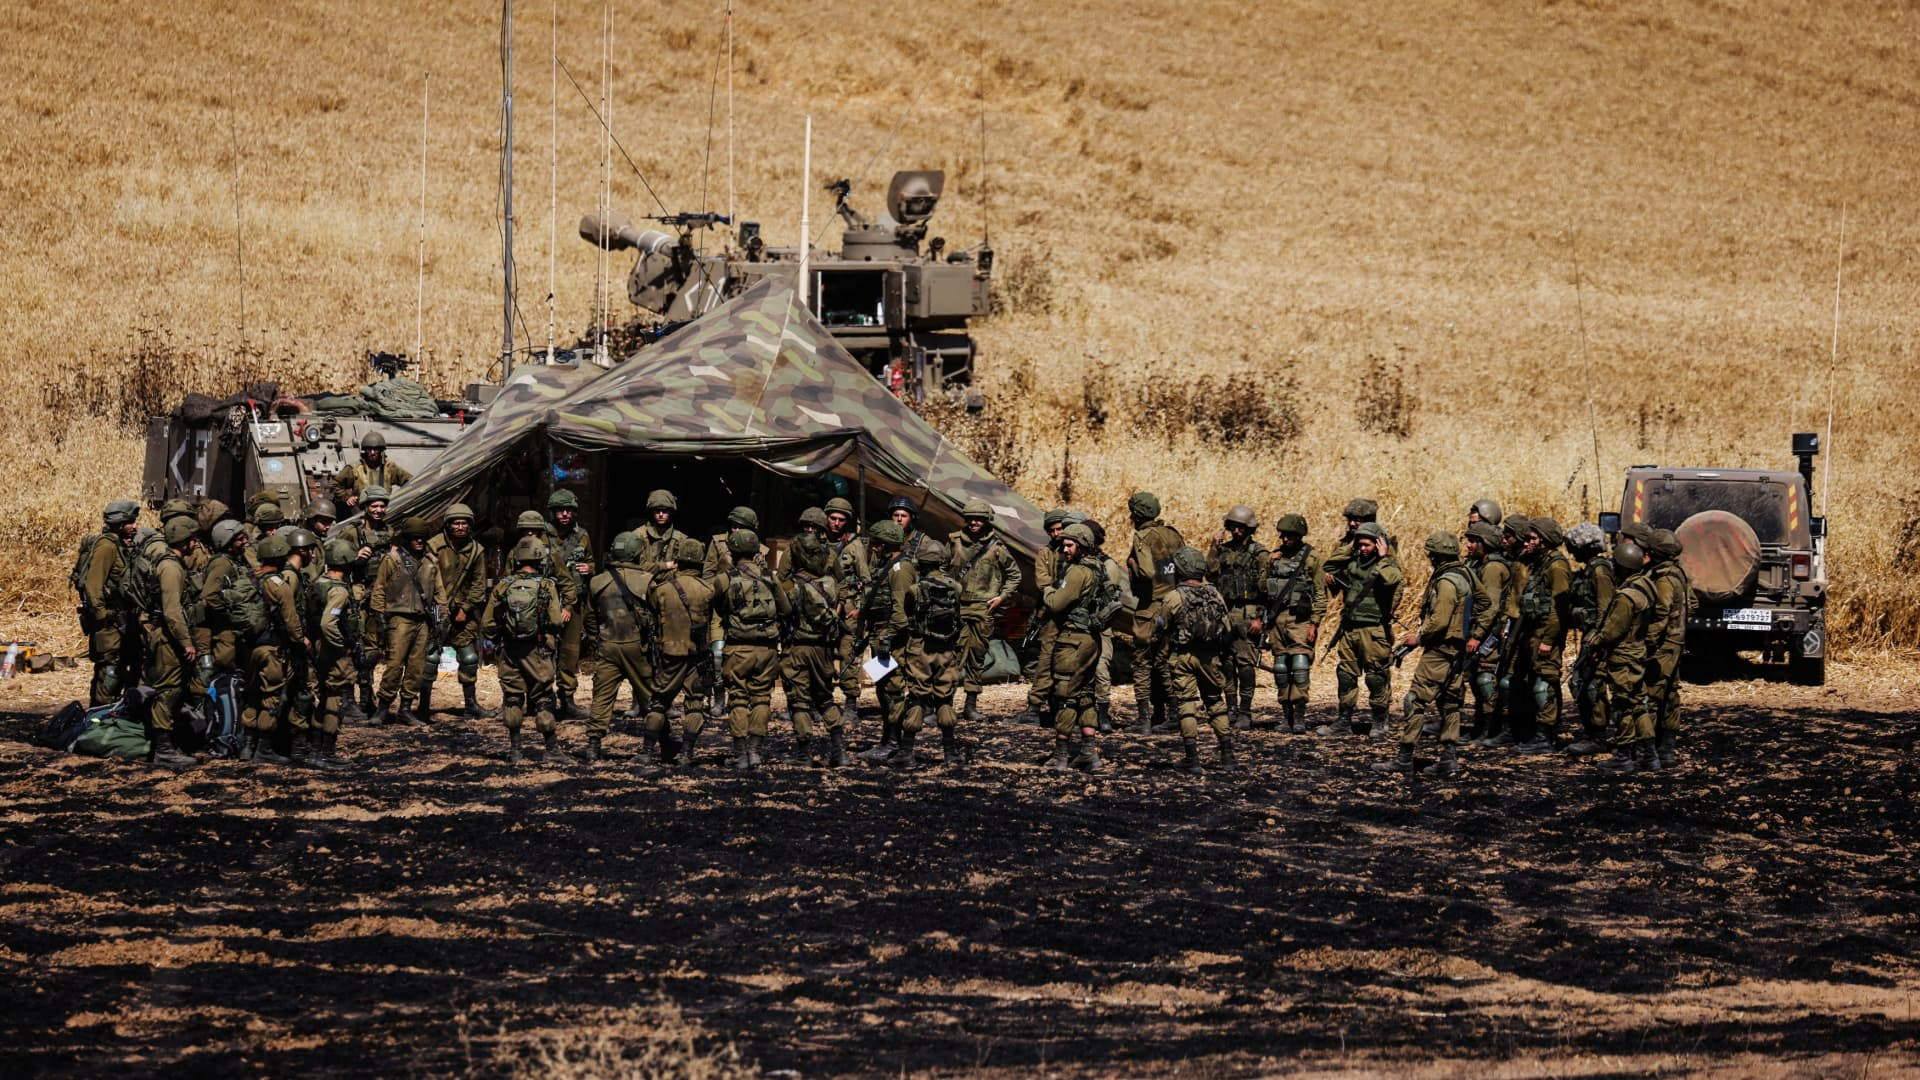 Israeli soldiers of an artillery unit gather near the border between Israel and the Gaza Strip, on its Israeli side May 14, 2021.